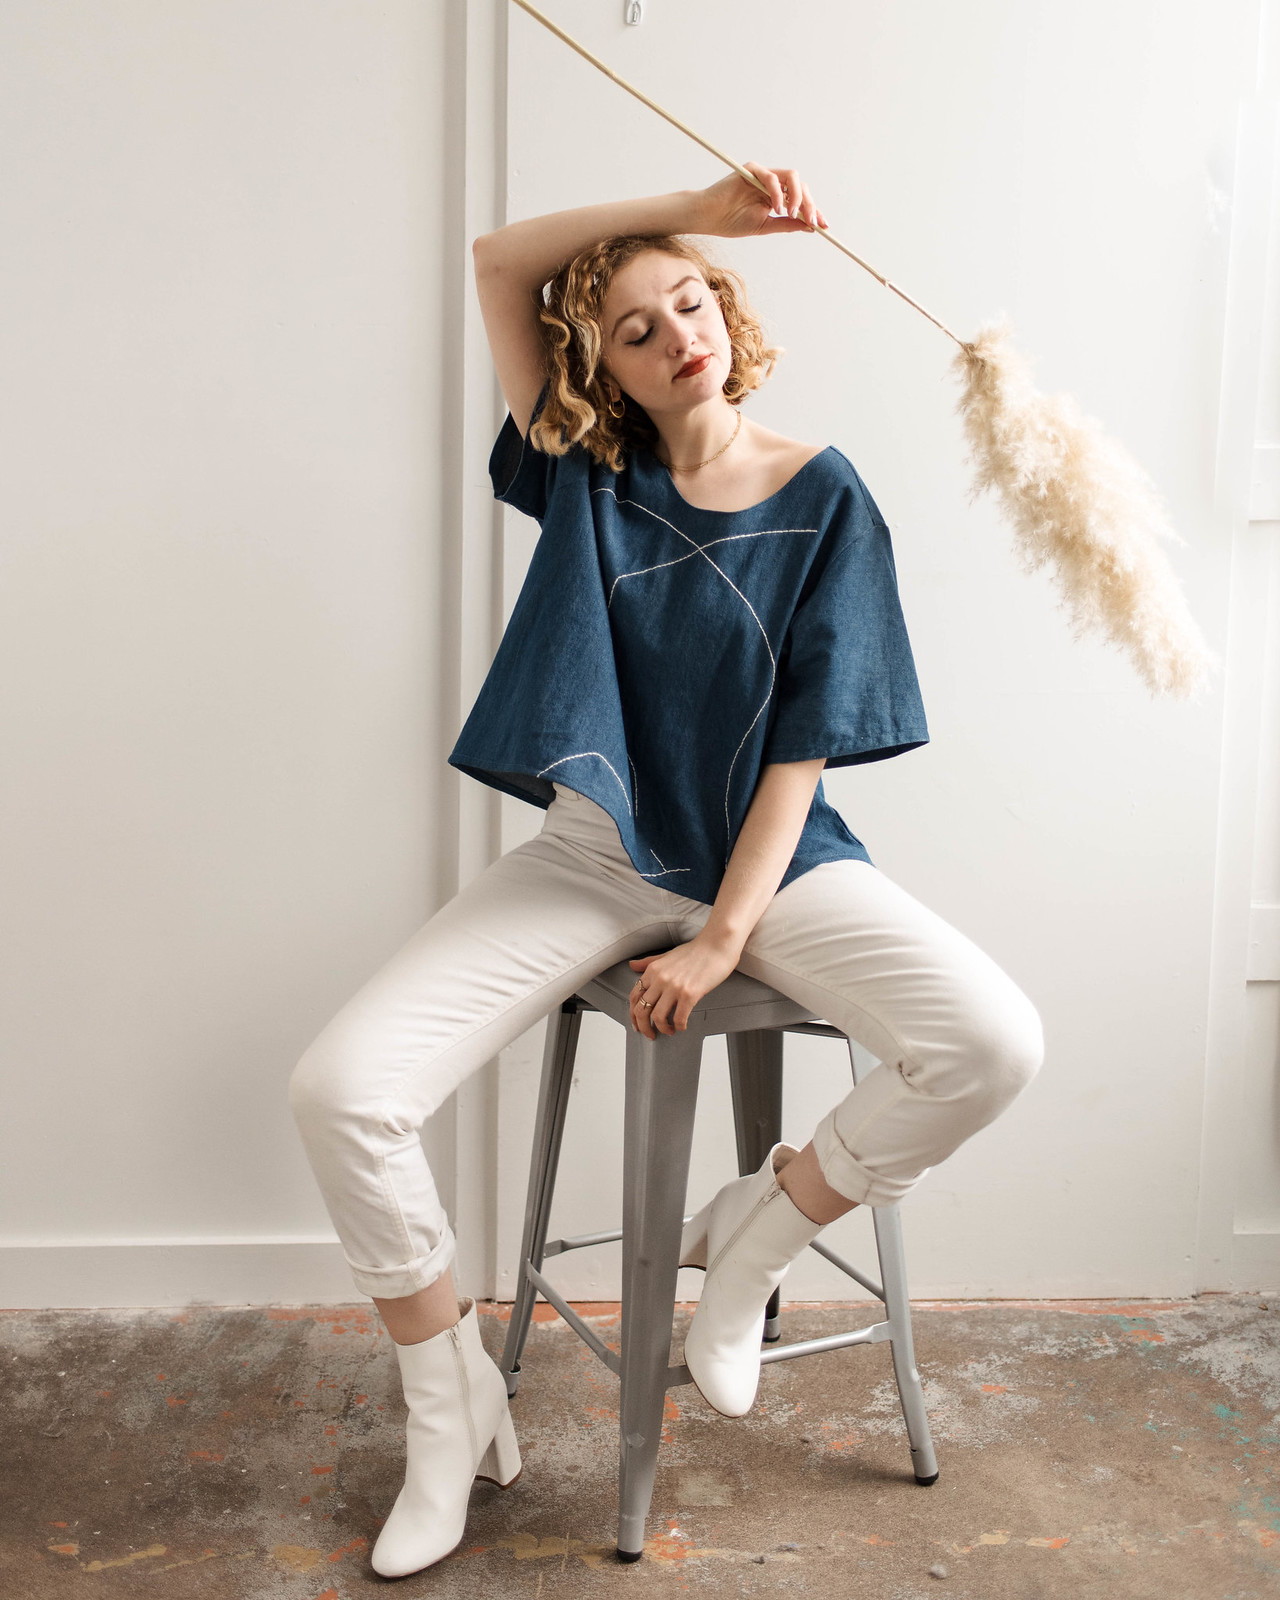 jaelle designs ethical and sustainable clothing line on juliettelaura.com